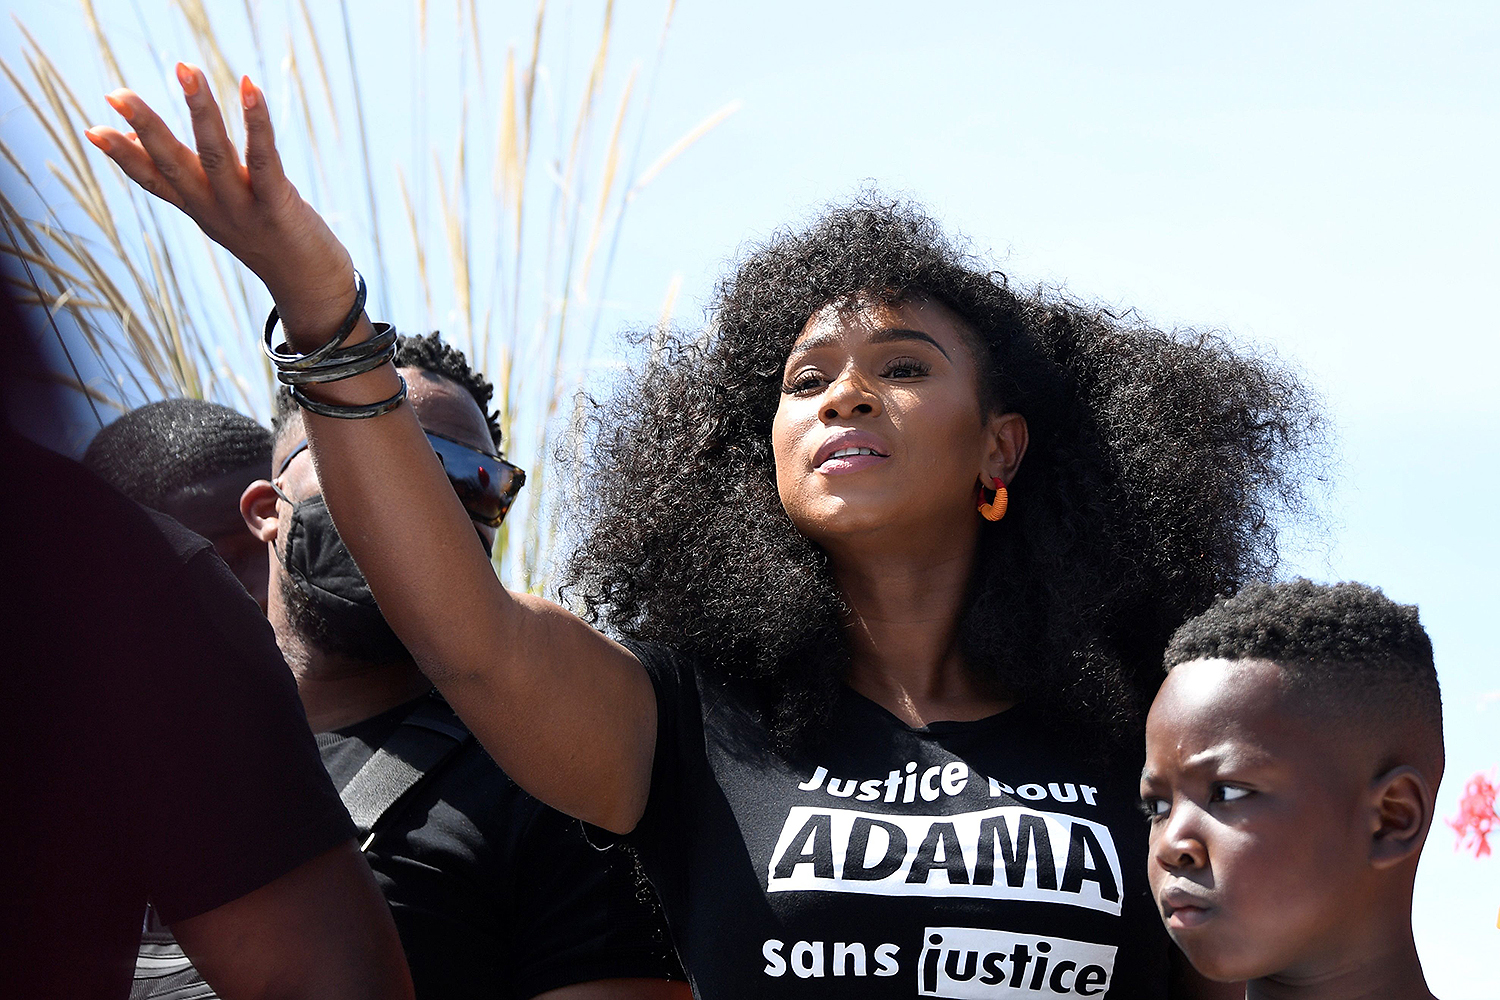 Assa Traore, the sister of Adama Traore, who died in police custody, takes part in a march to call for justice in Beaumont-sur-Oise, outside Paris, on July 18. BERTRAND GUAY/AFP via Getty Images